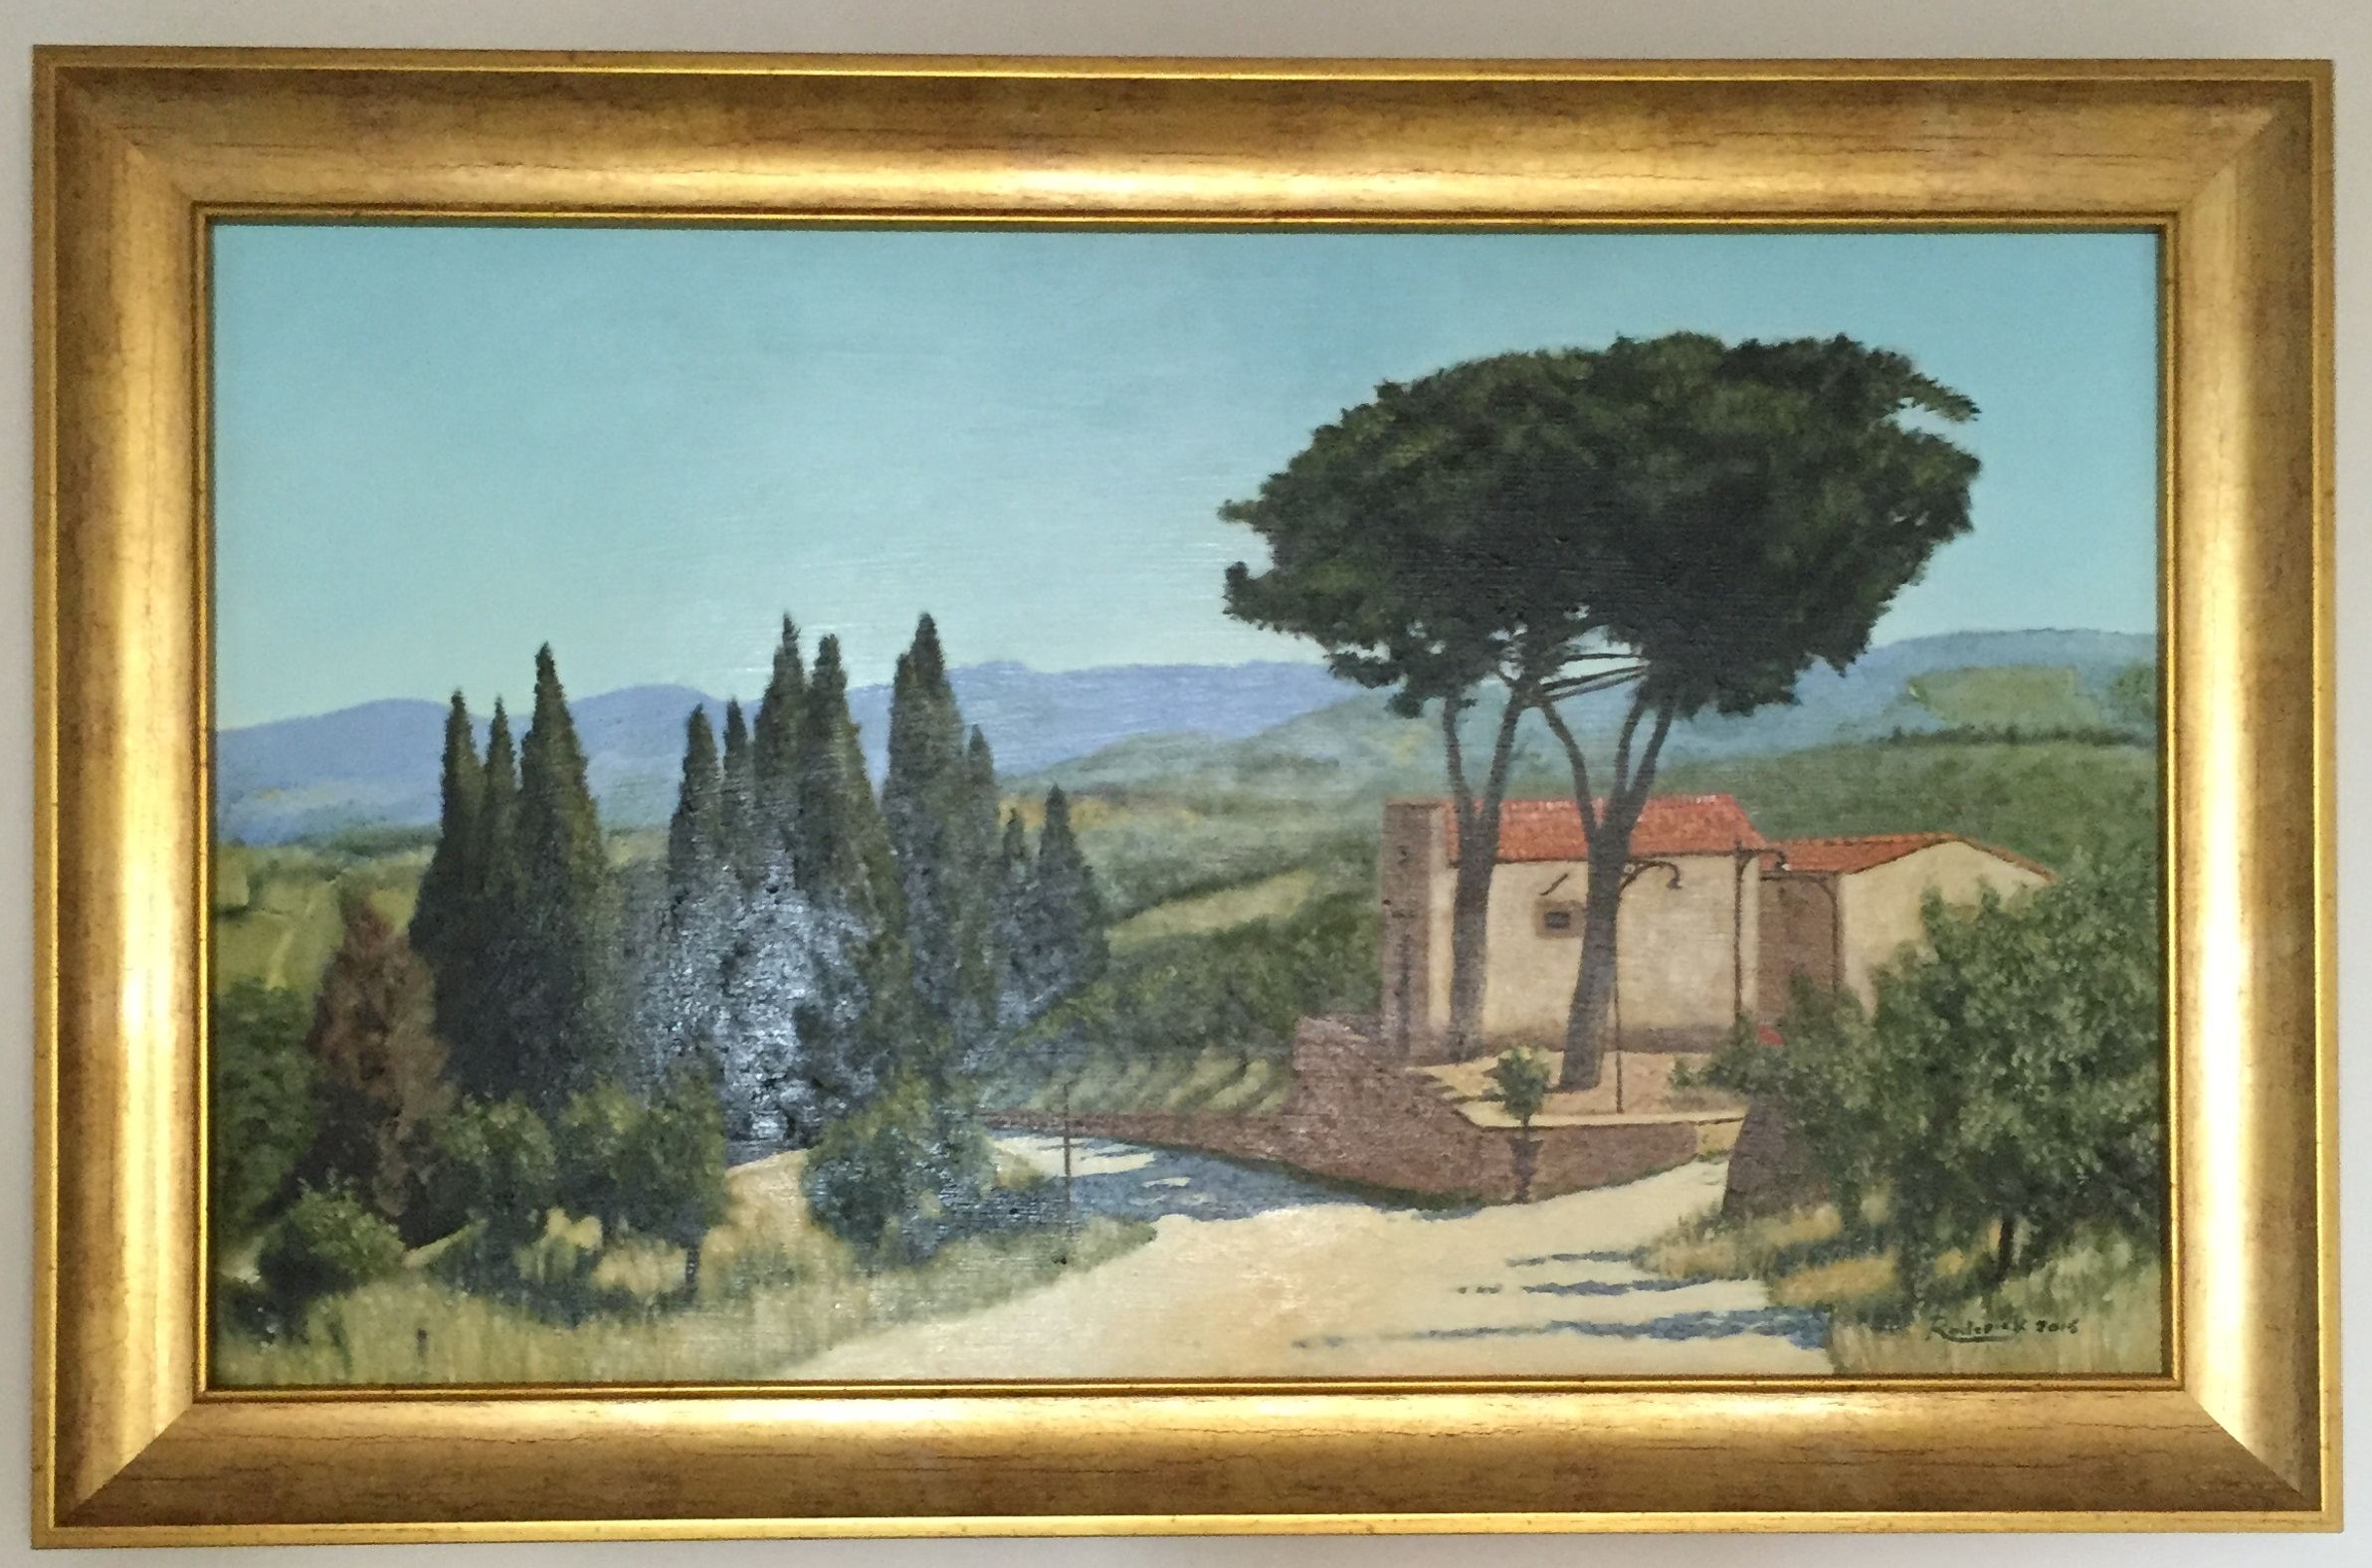 Framed_Oil_Painting_Landscape